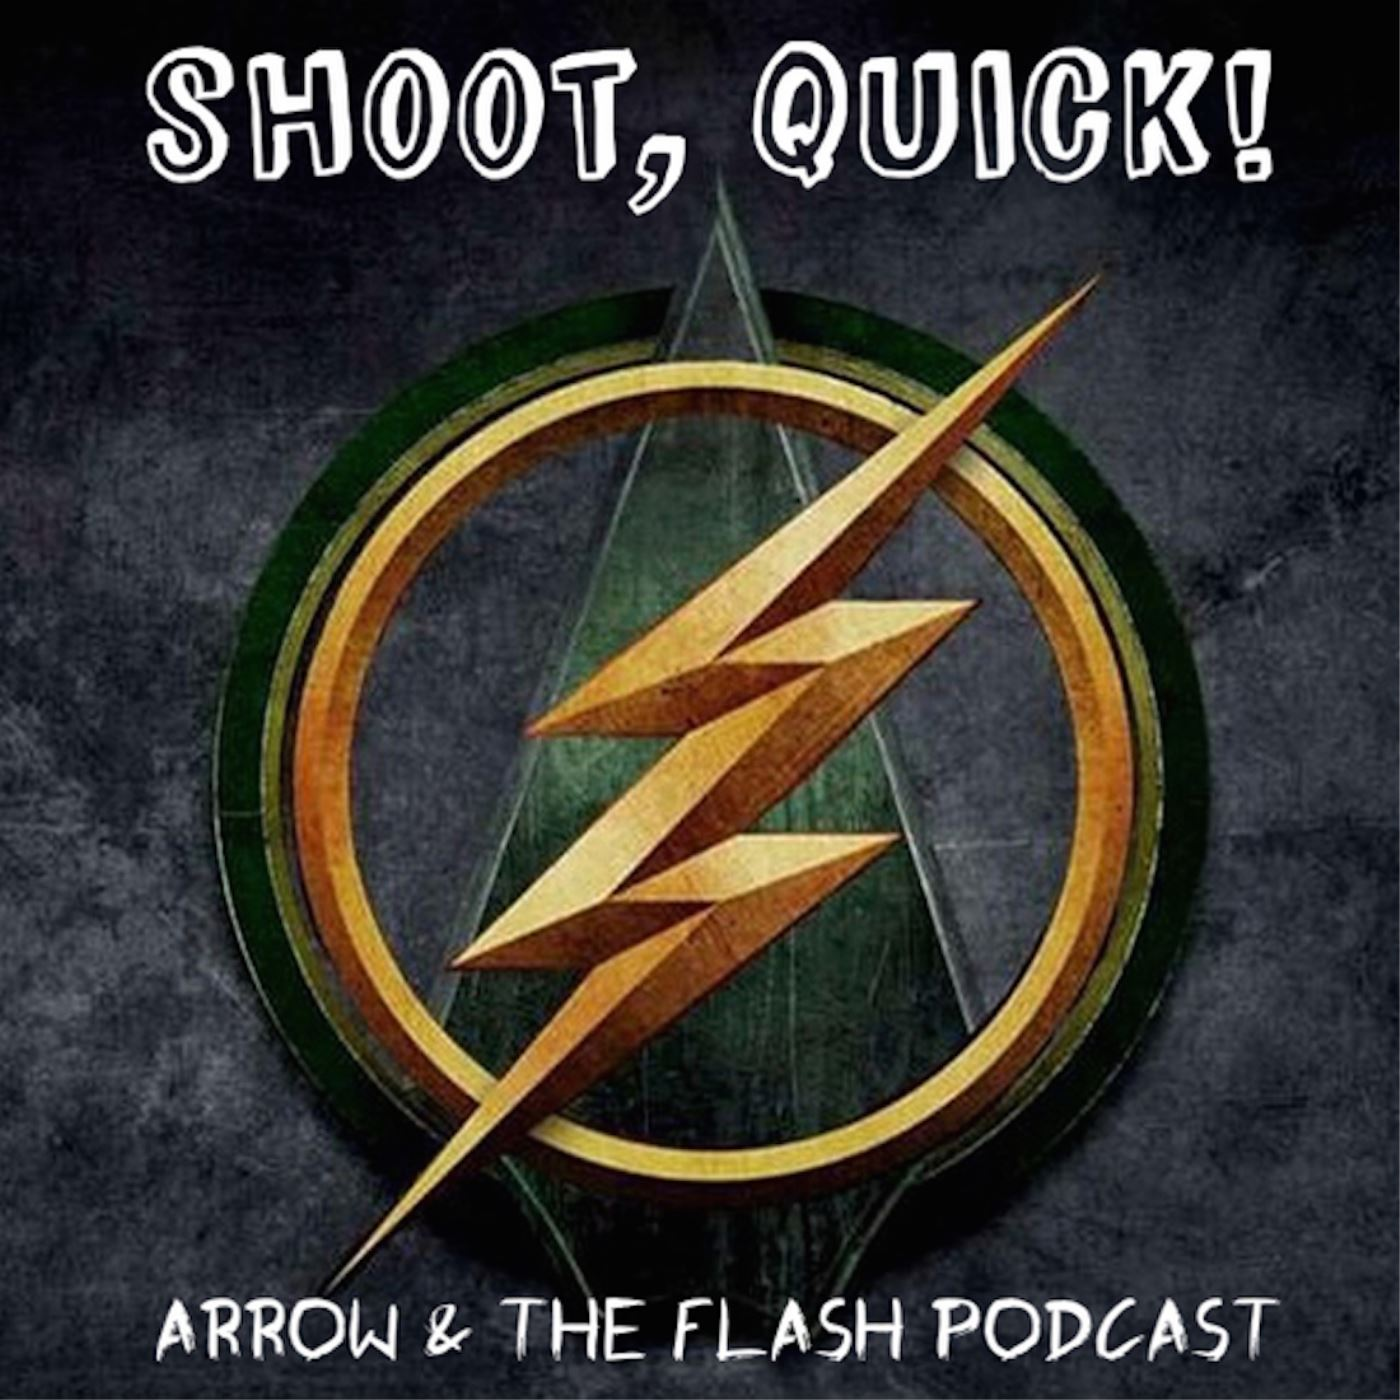 Shoot, Quick! S4 E5 - Aquaman and the Problem with DC